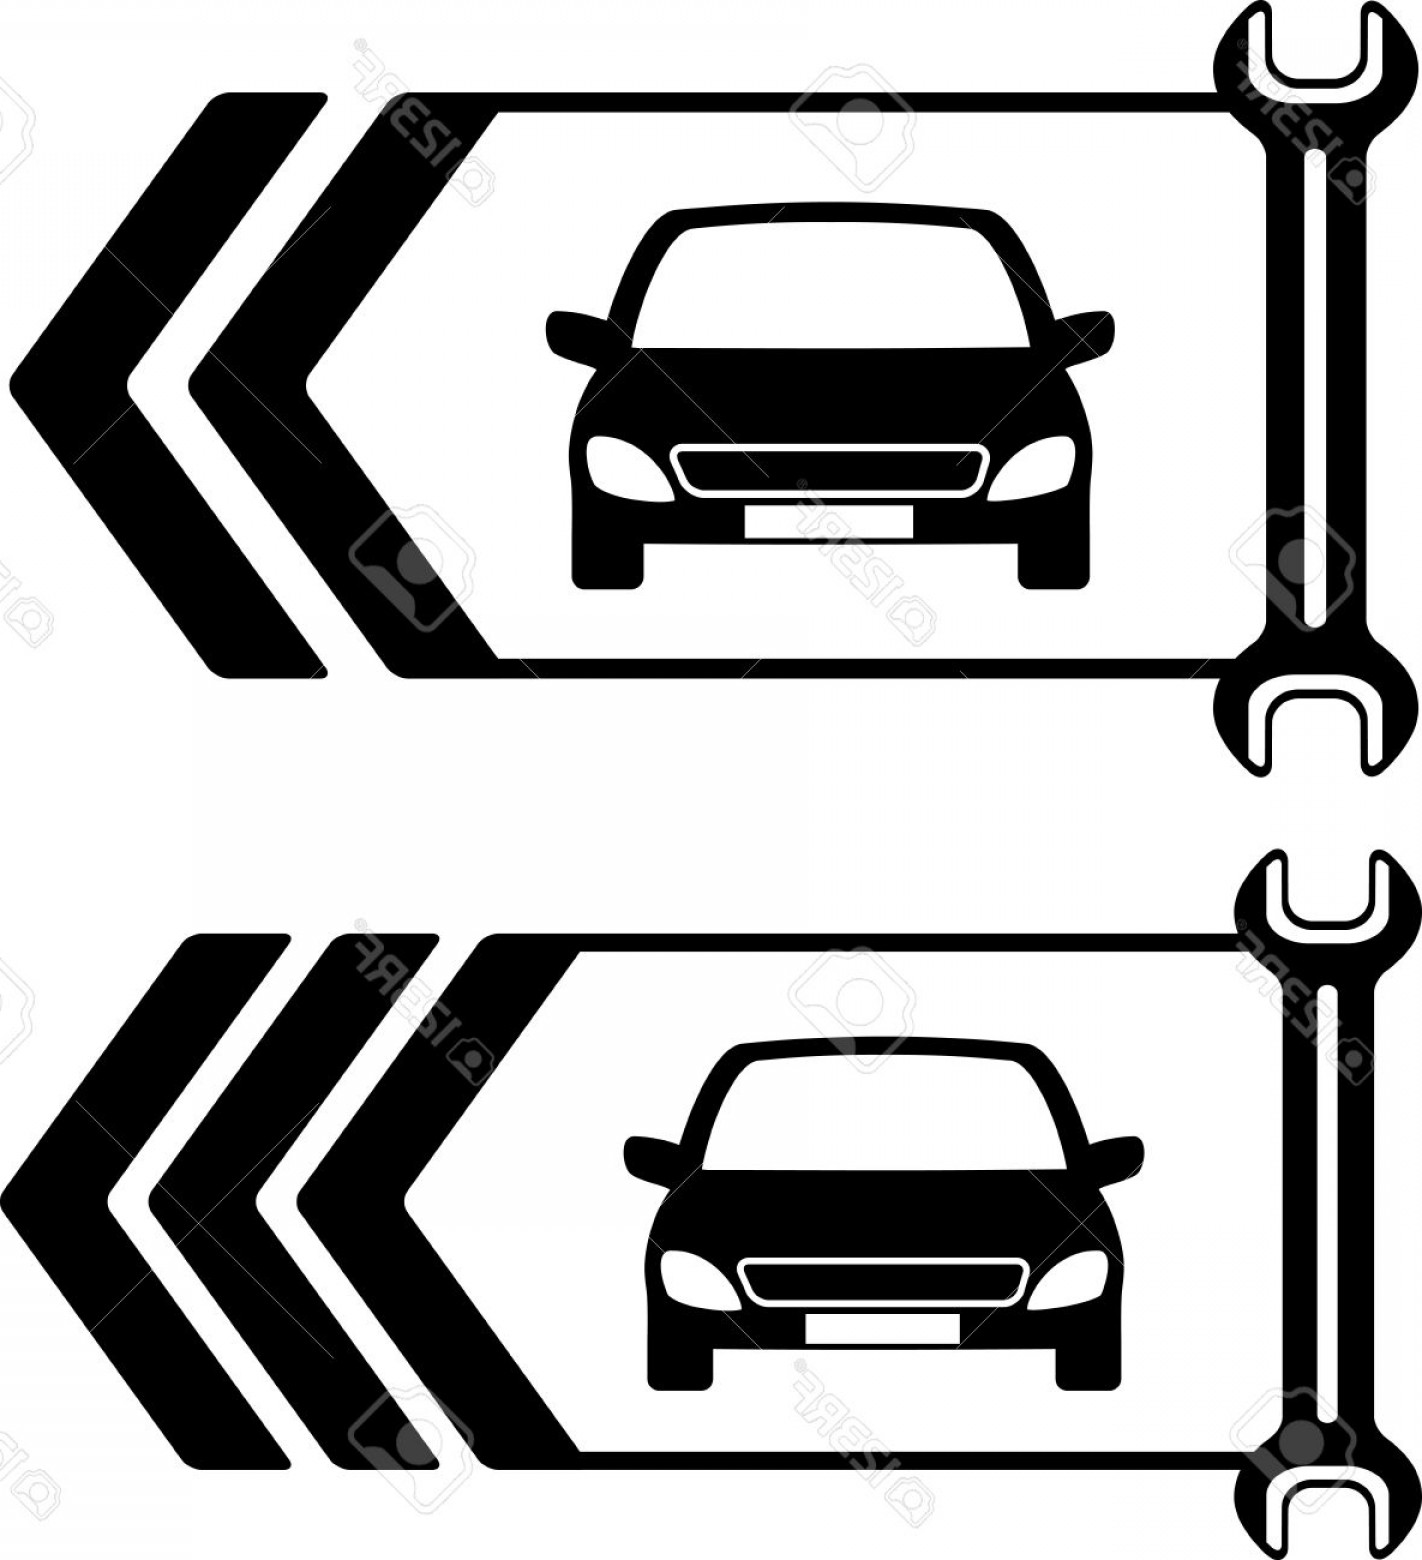 Fixing Car Vector: Photoset Of Two Road Sign Of Car Repair On White Background